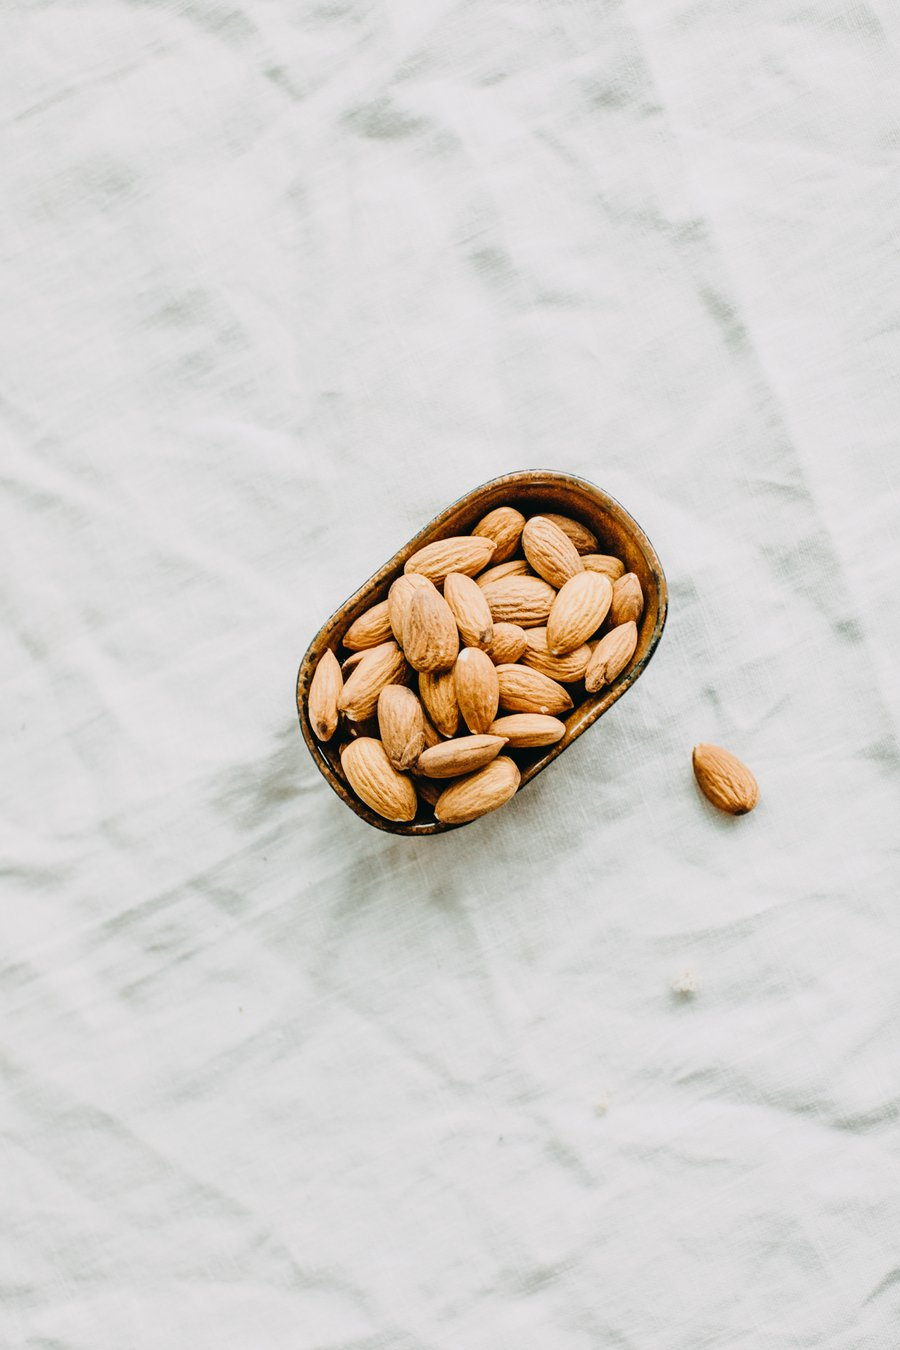 NUTS_BY_NATURE_-_LAUNCH_SHOOT_-_MAY_2018-43_900x